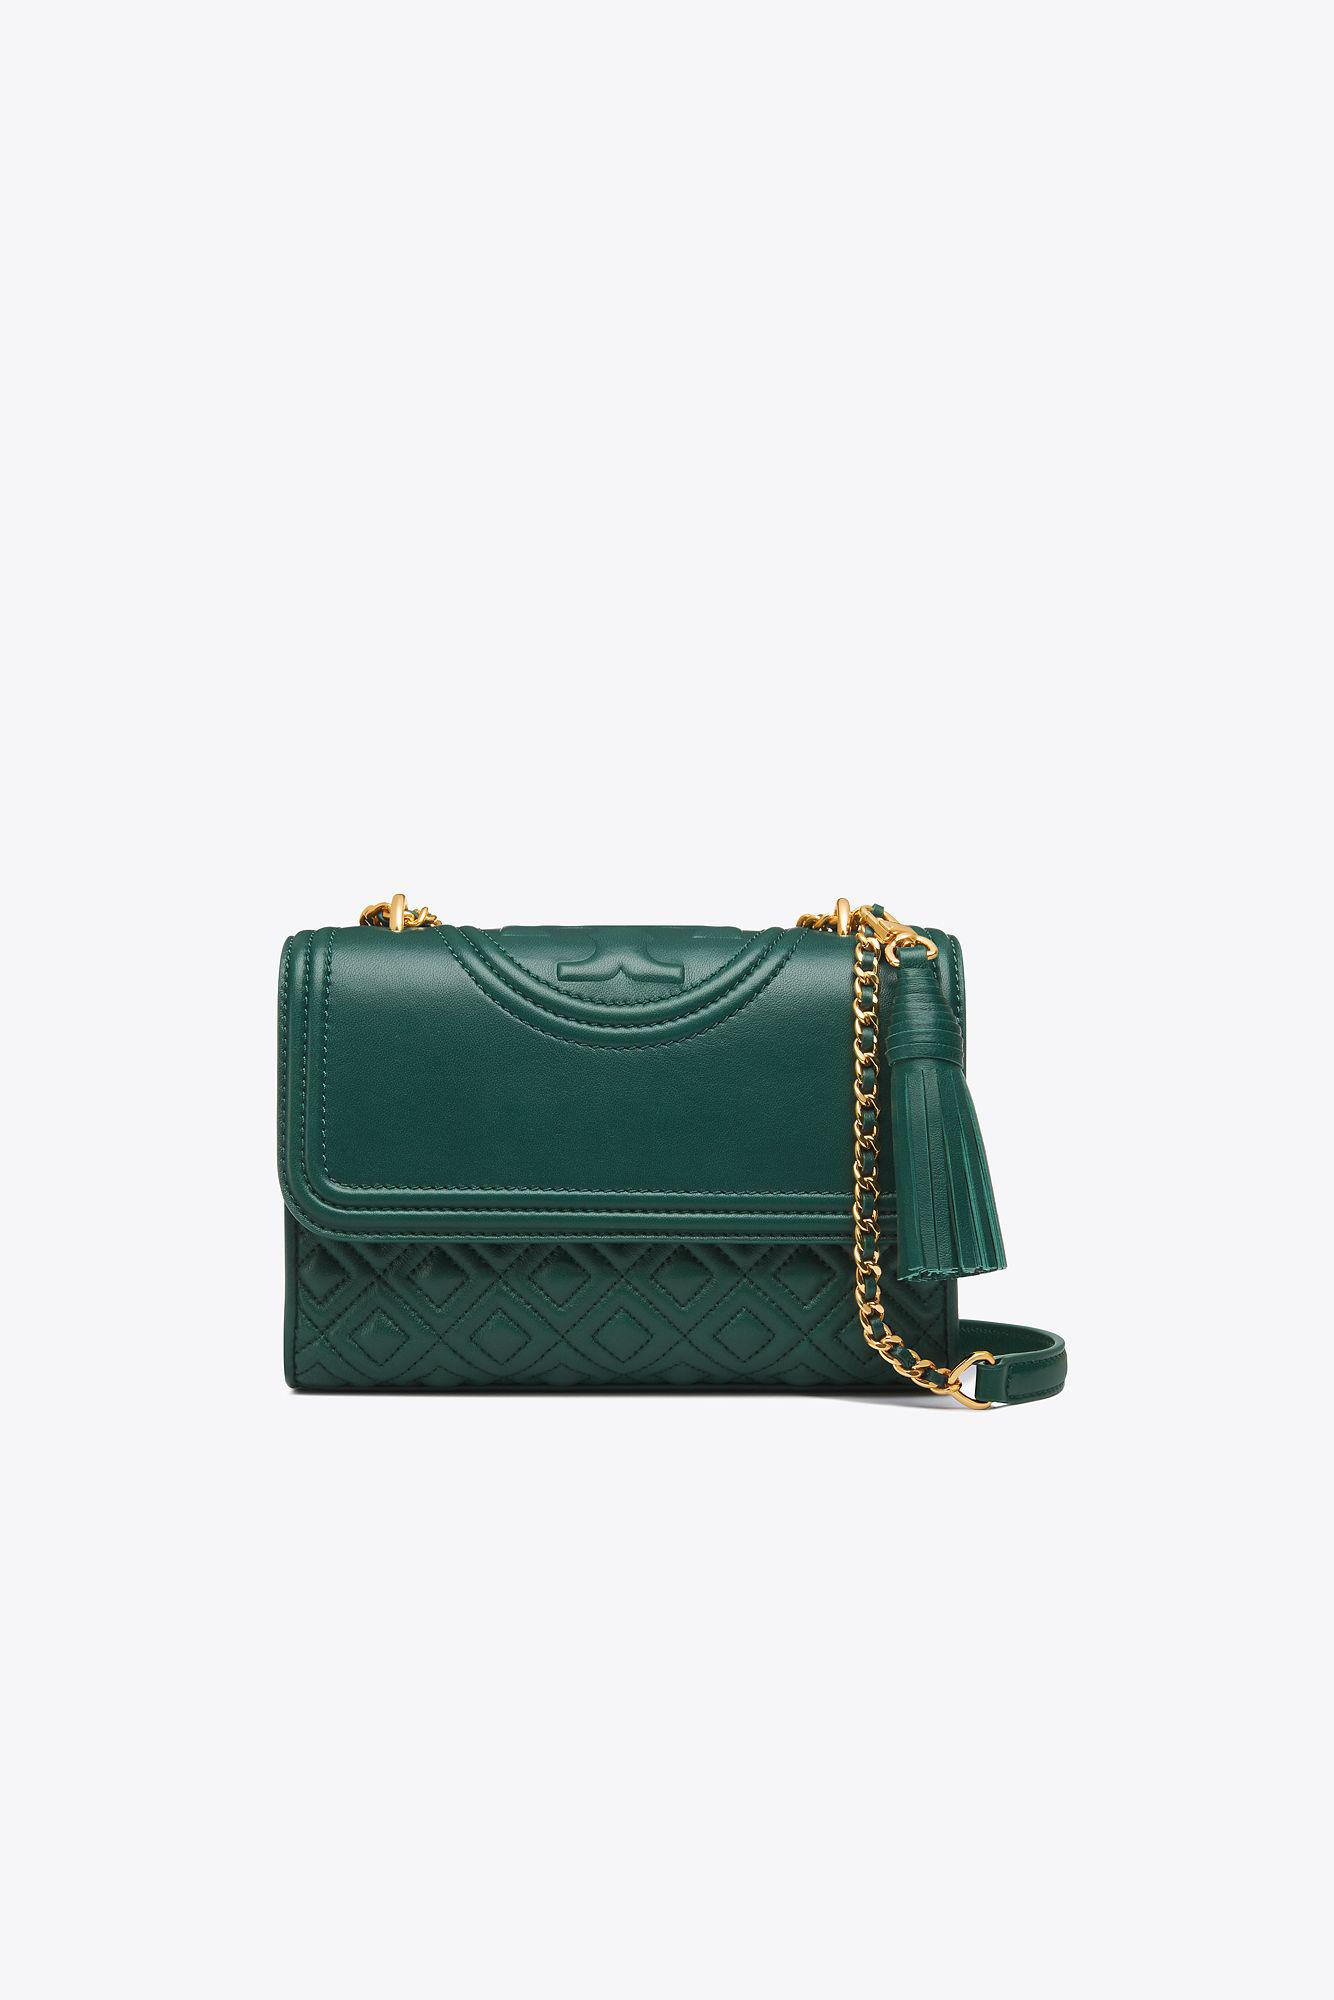 34b3f146f19f Lyst - Tory Burch Fleming Small Convertible Shoulder Bag in Green